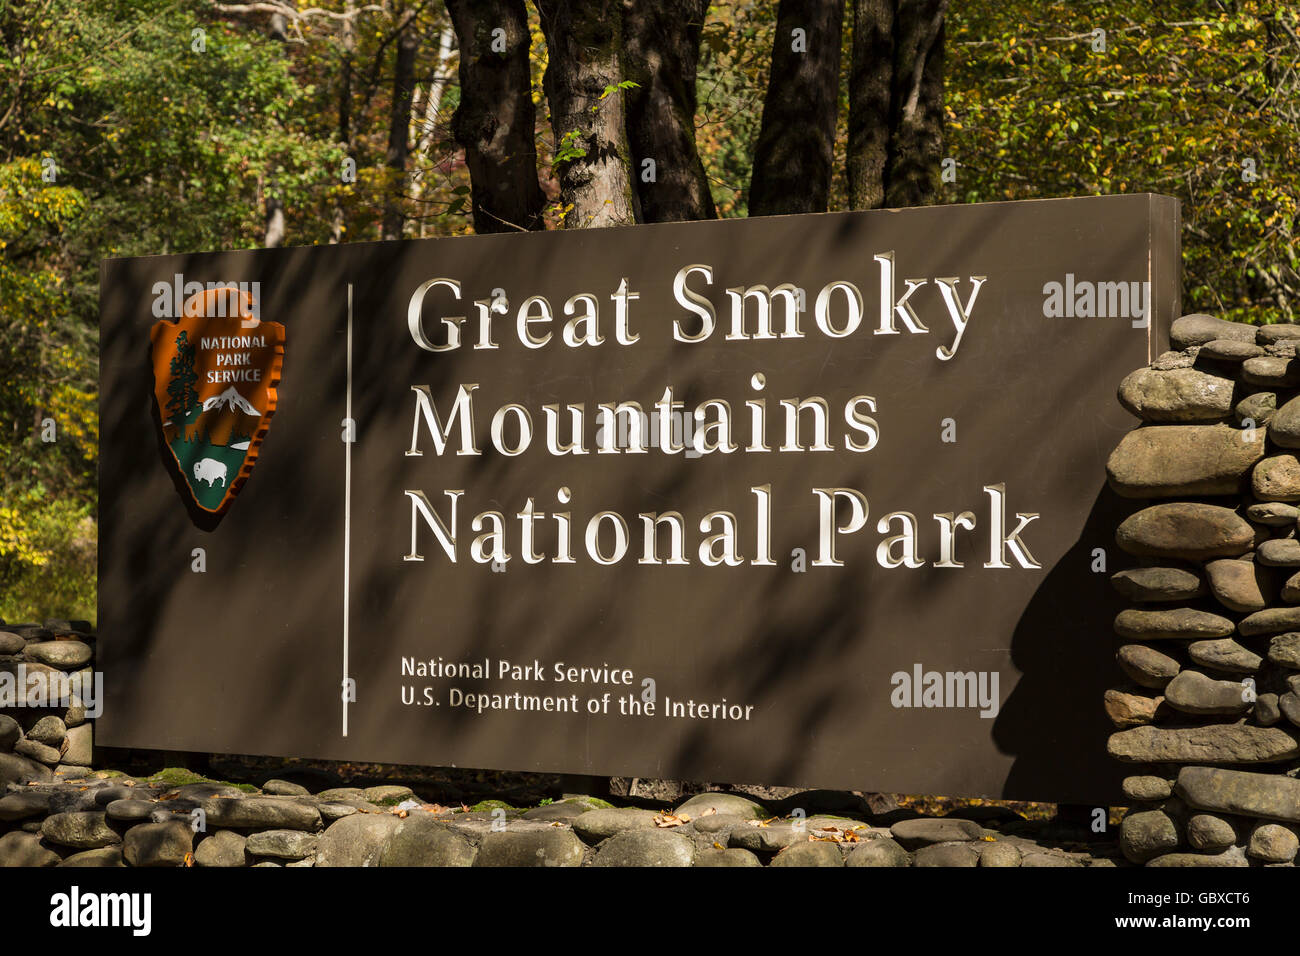 Entrance sign to Great Smoky Mountains National Park, NC, USA - Stock Image